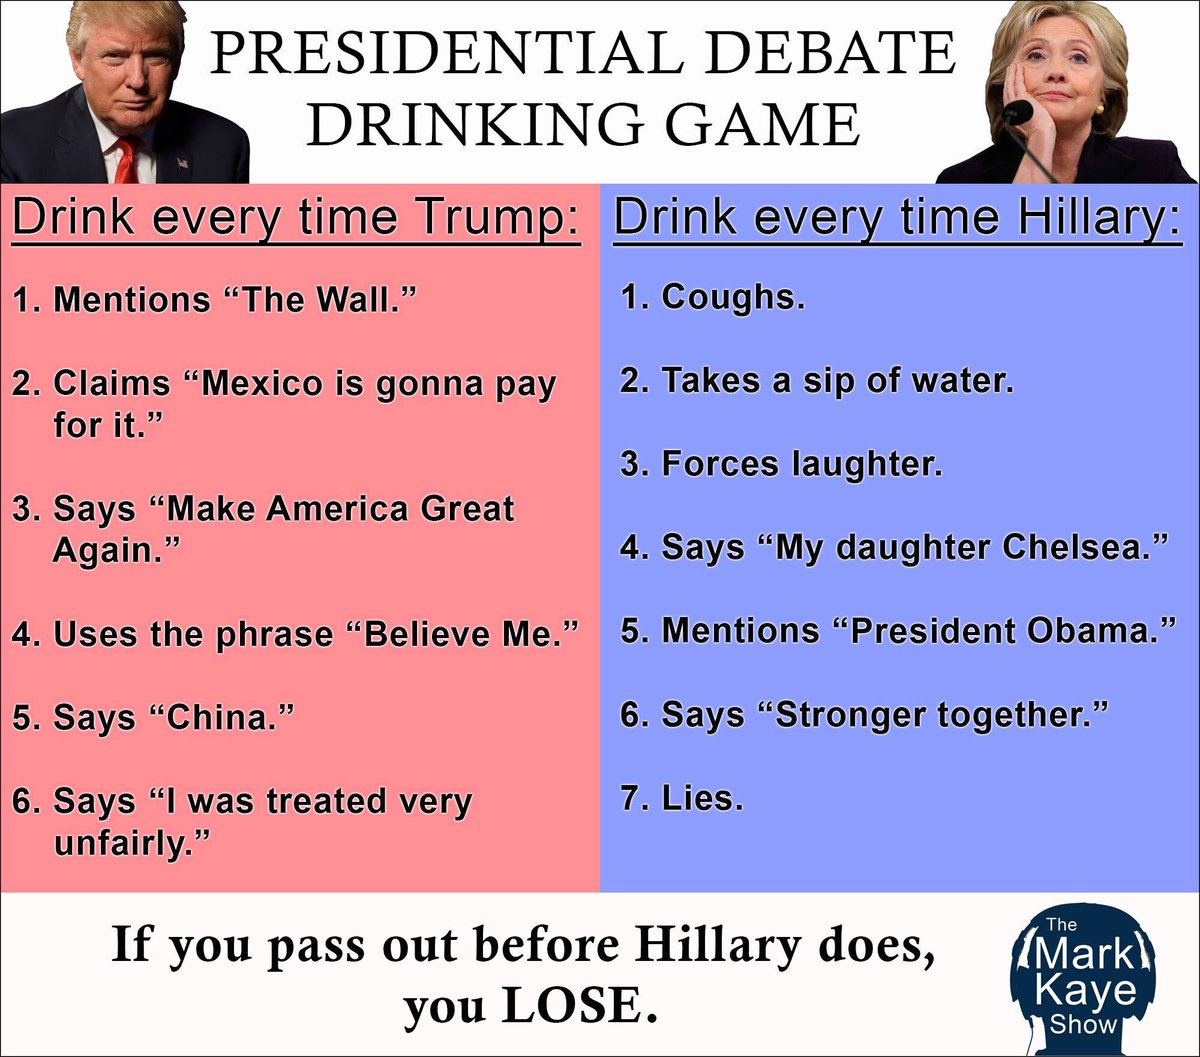 Fun drinking game for tonight that I saw on FB today. I pray for your livers. https://t.co/piLYo8E5iG